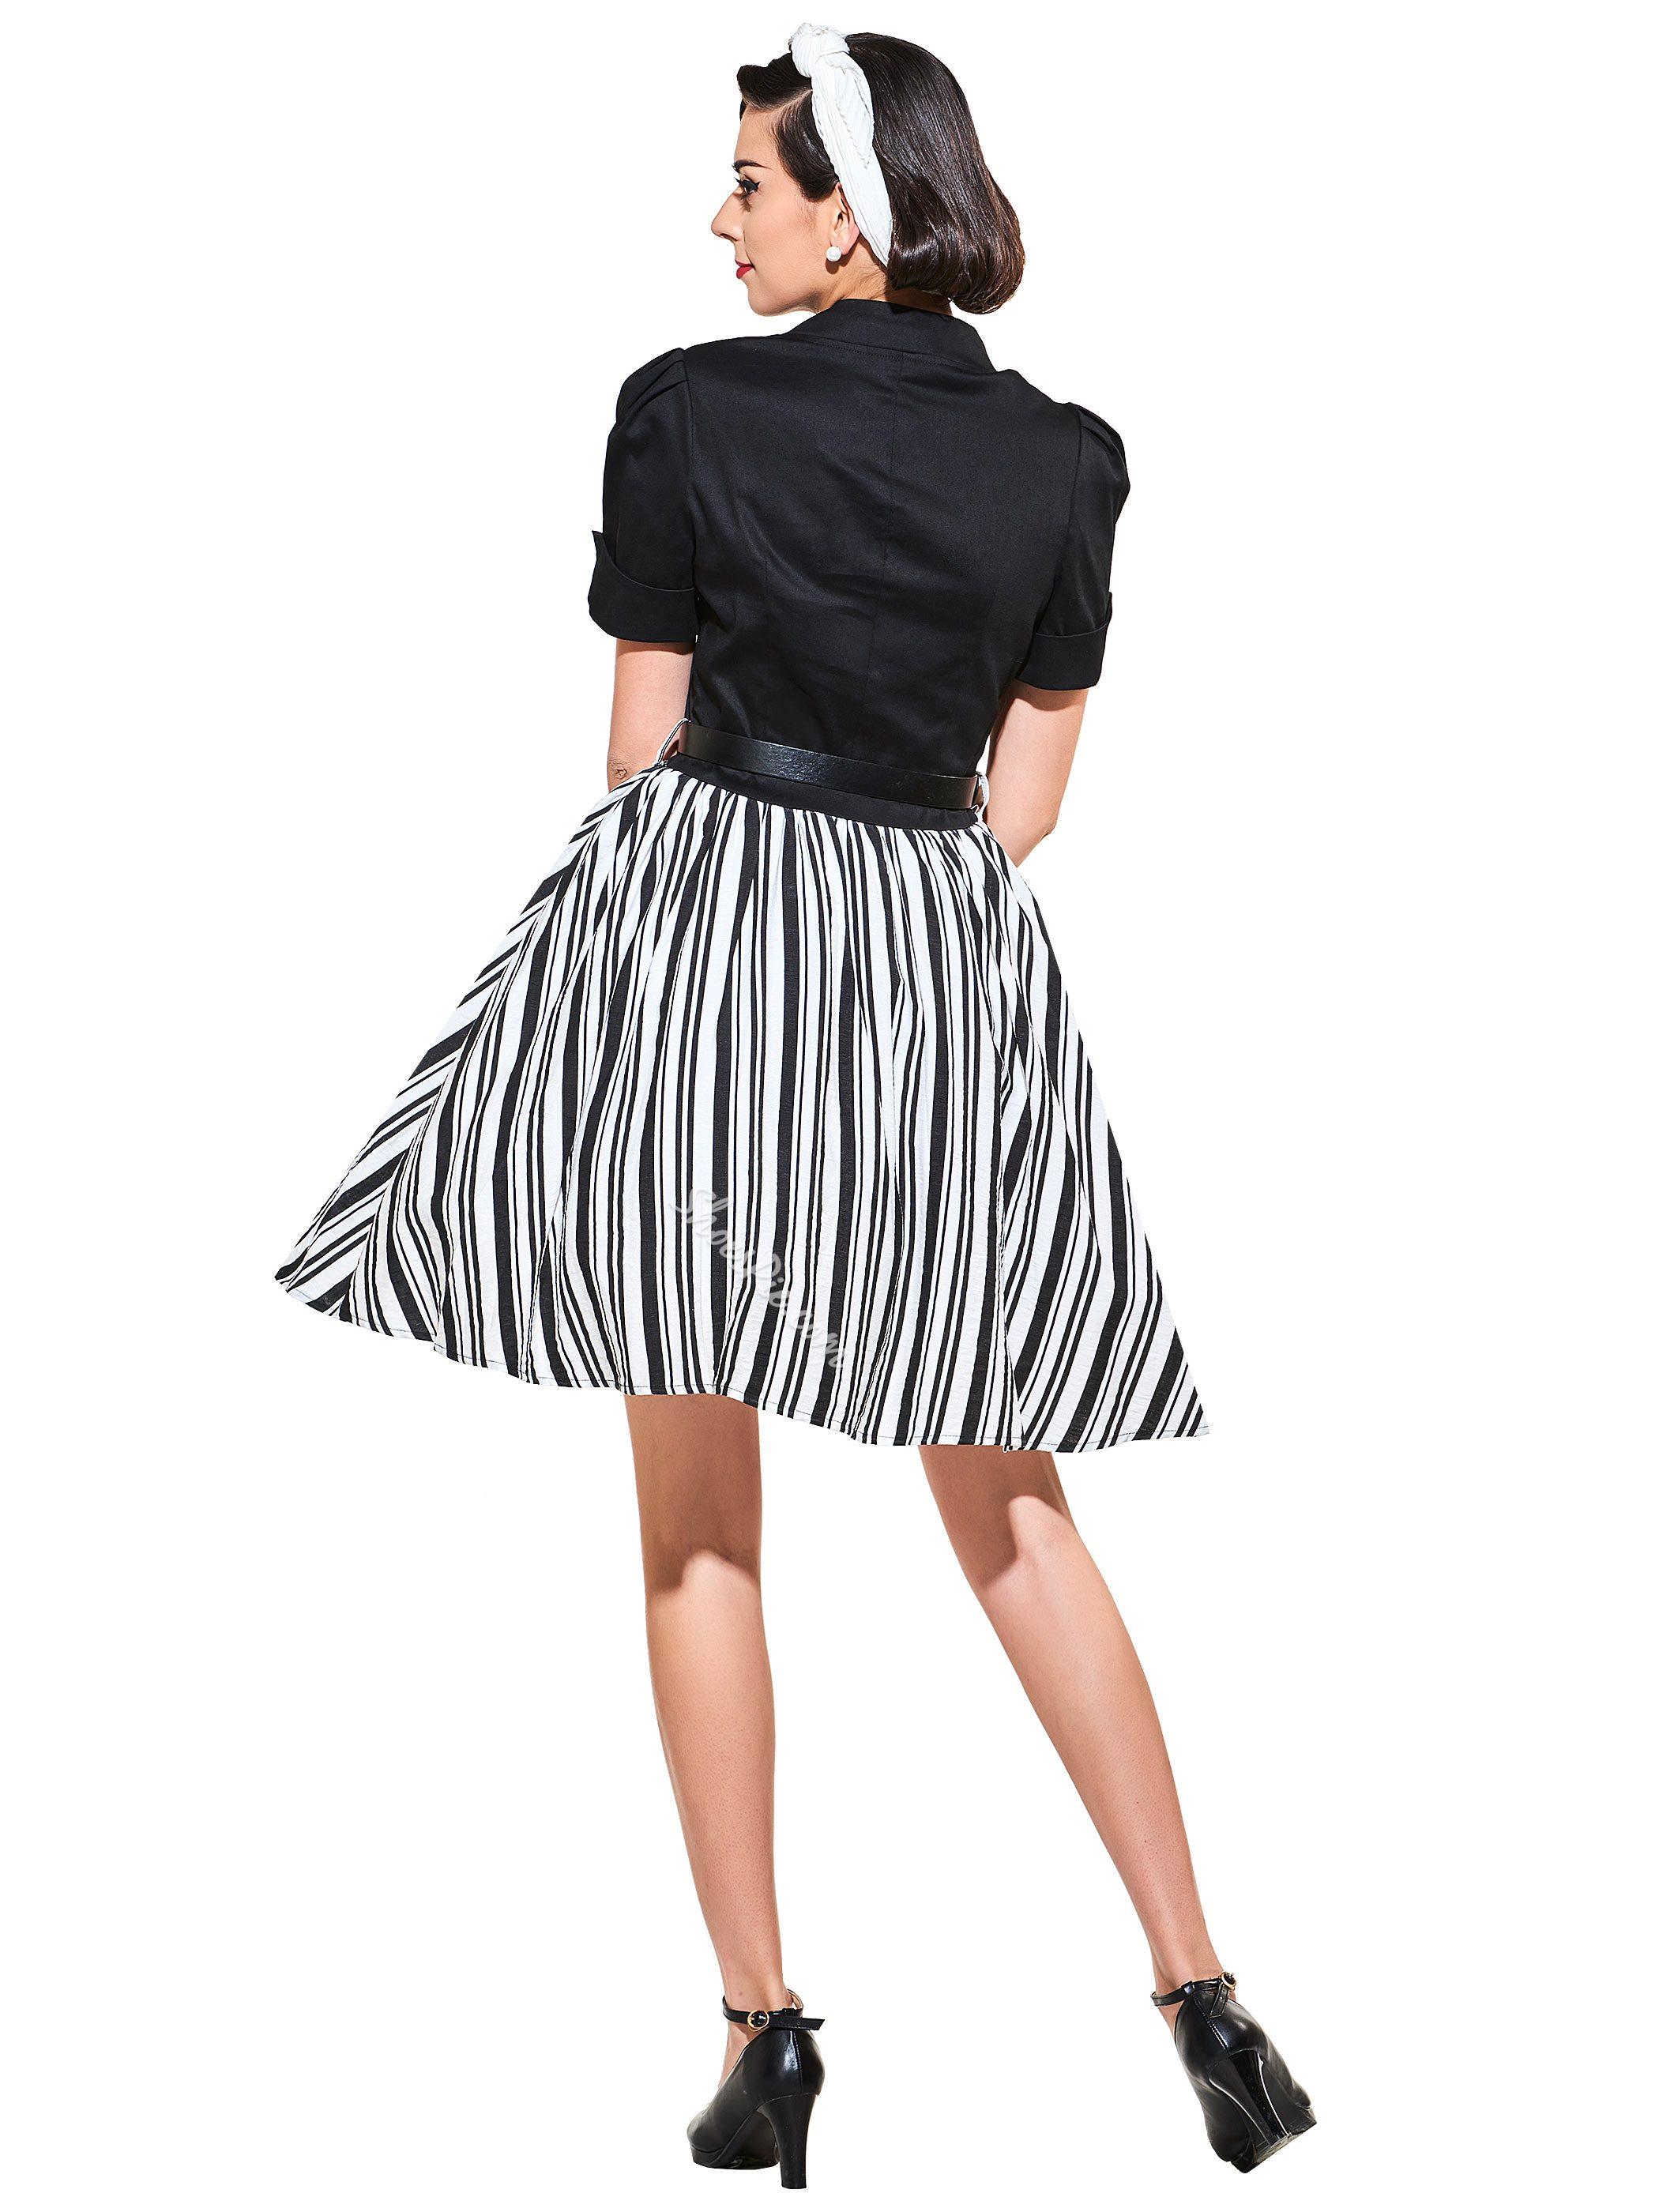 Stand Collar Short Sleeve Vintage Dress